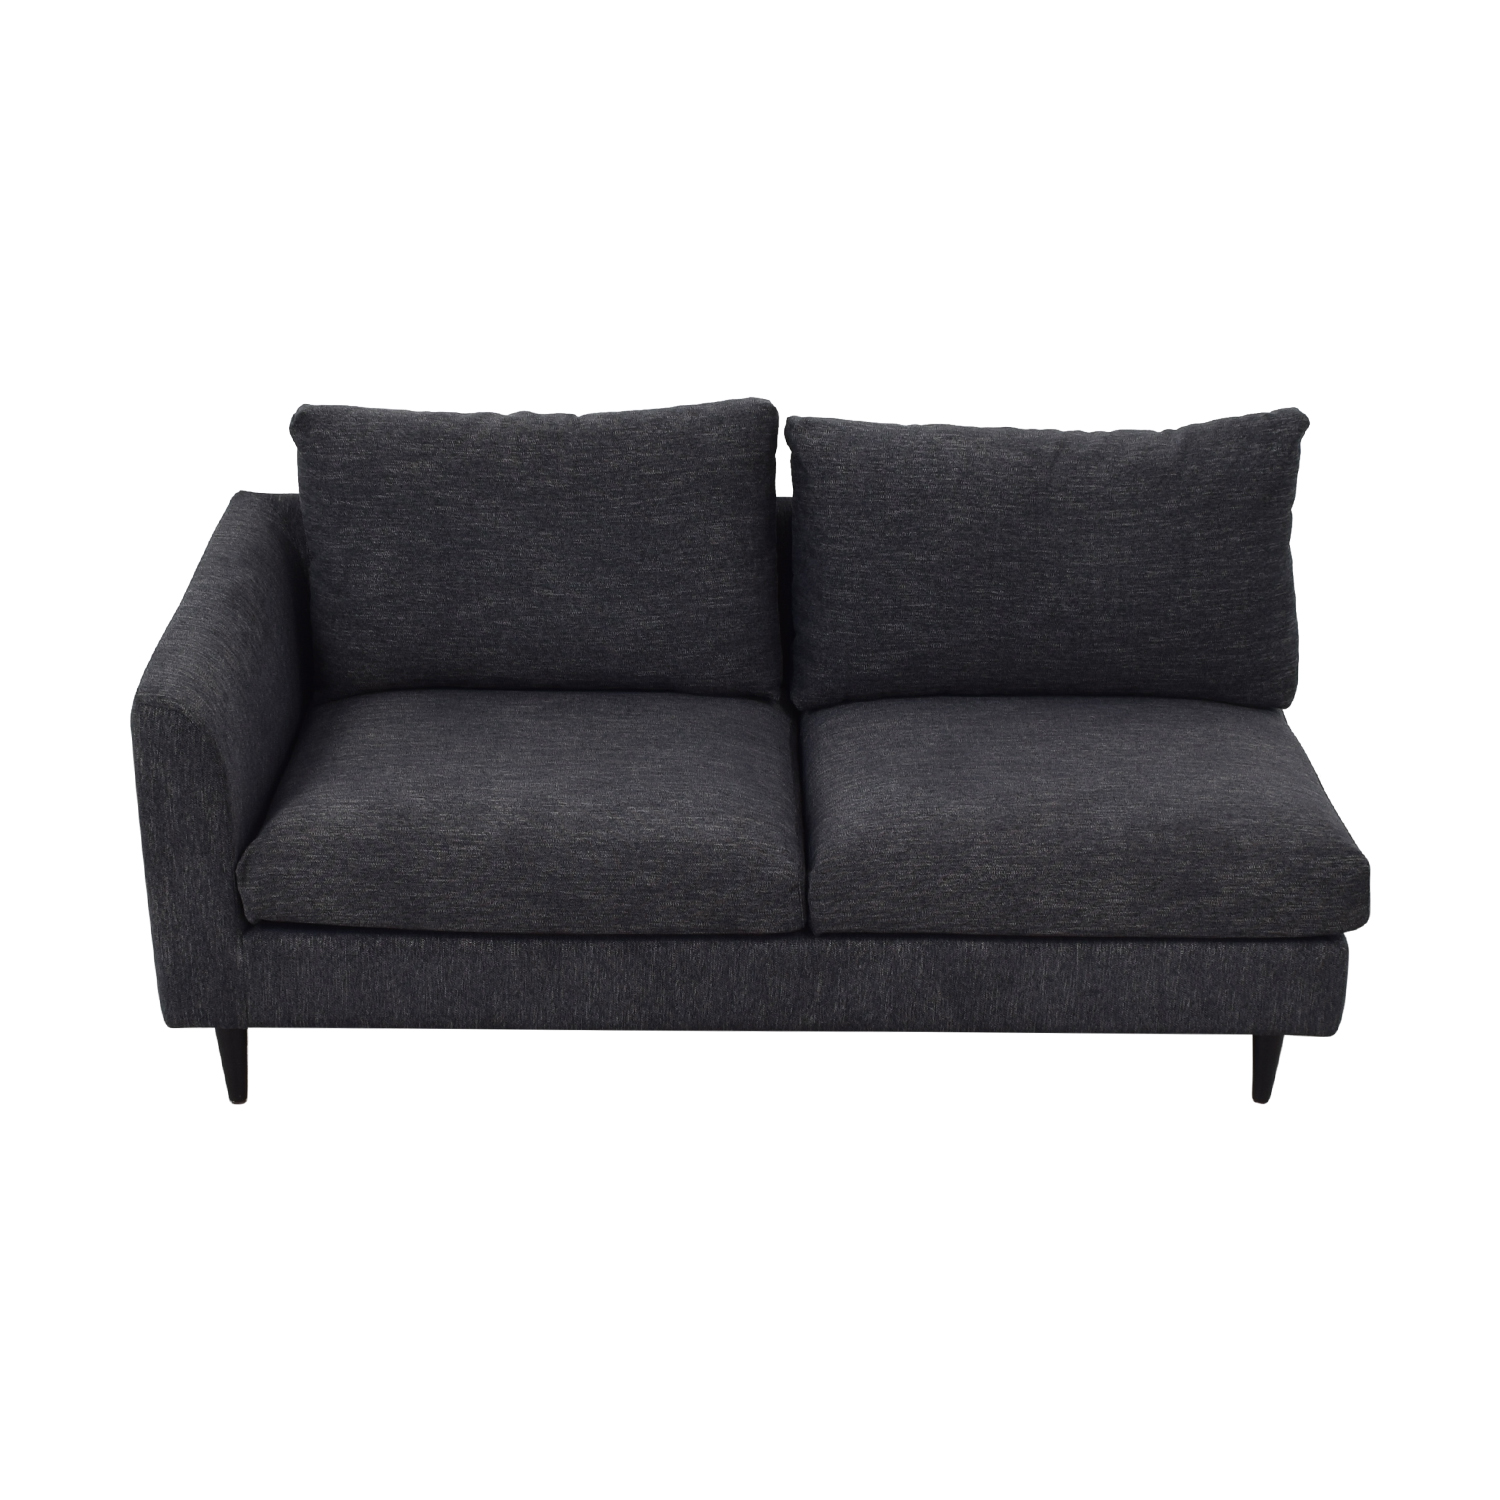 Interior Define Owens Modular Left Arm Sofa price